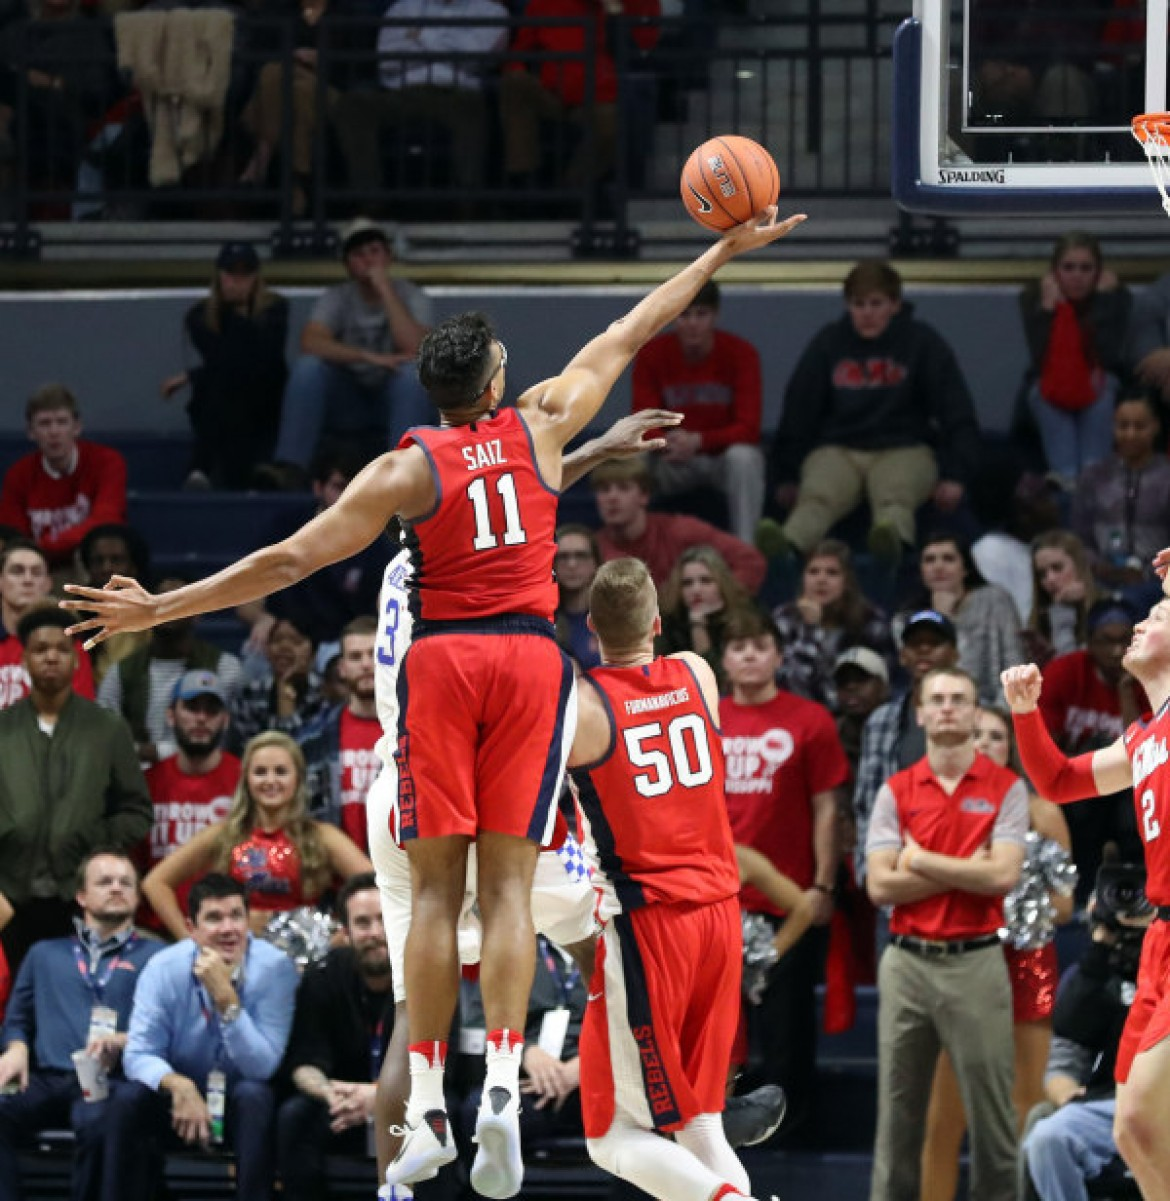 Wins against Georgia tough lately, but Ole Miss aims for one tonight